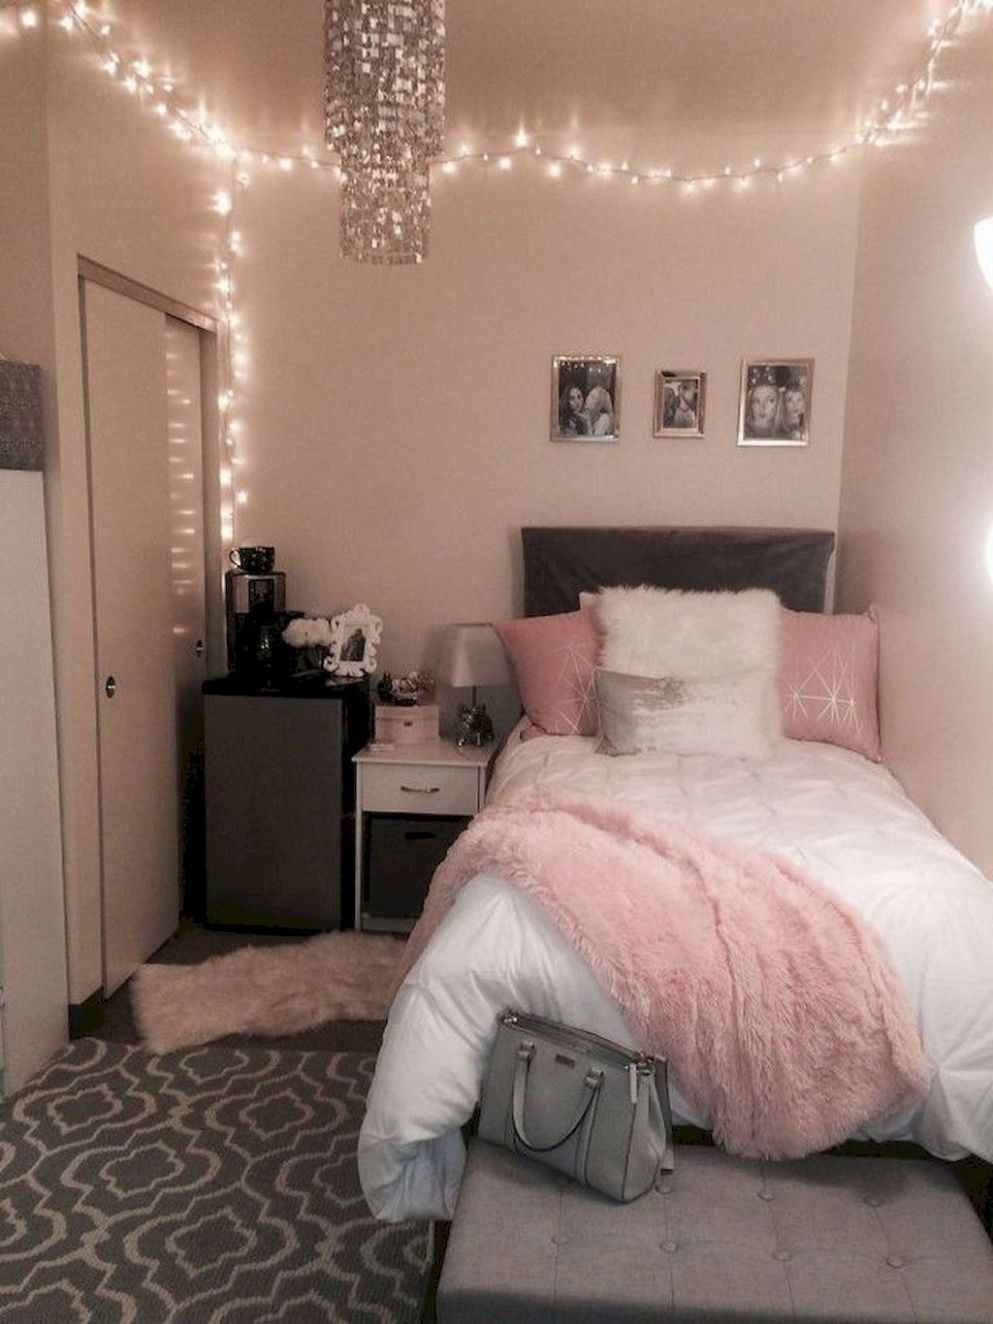 11 Cute Dorm Room Decorating Ideas on A Budget | Small room ..